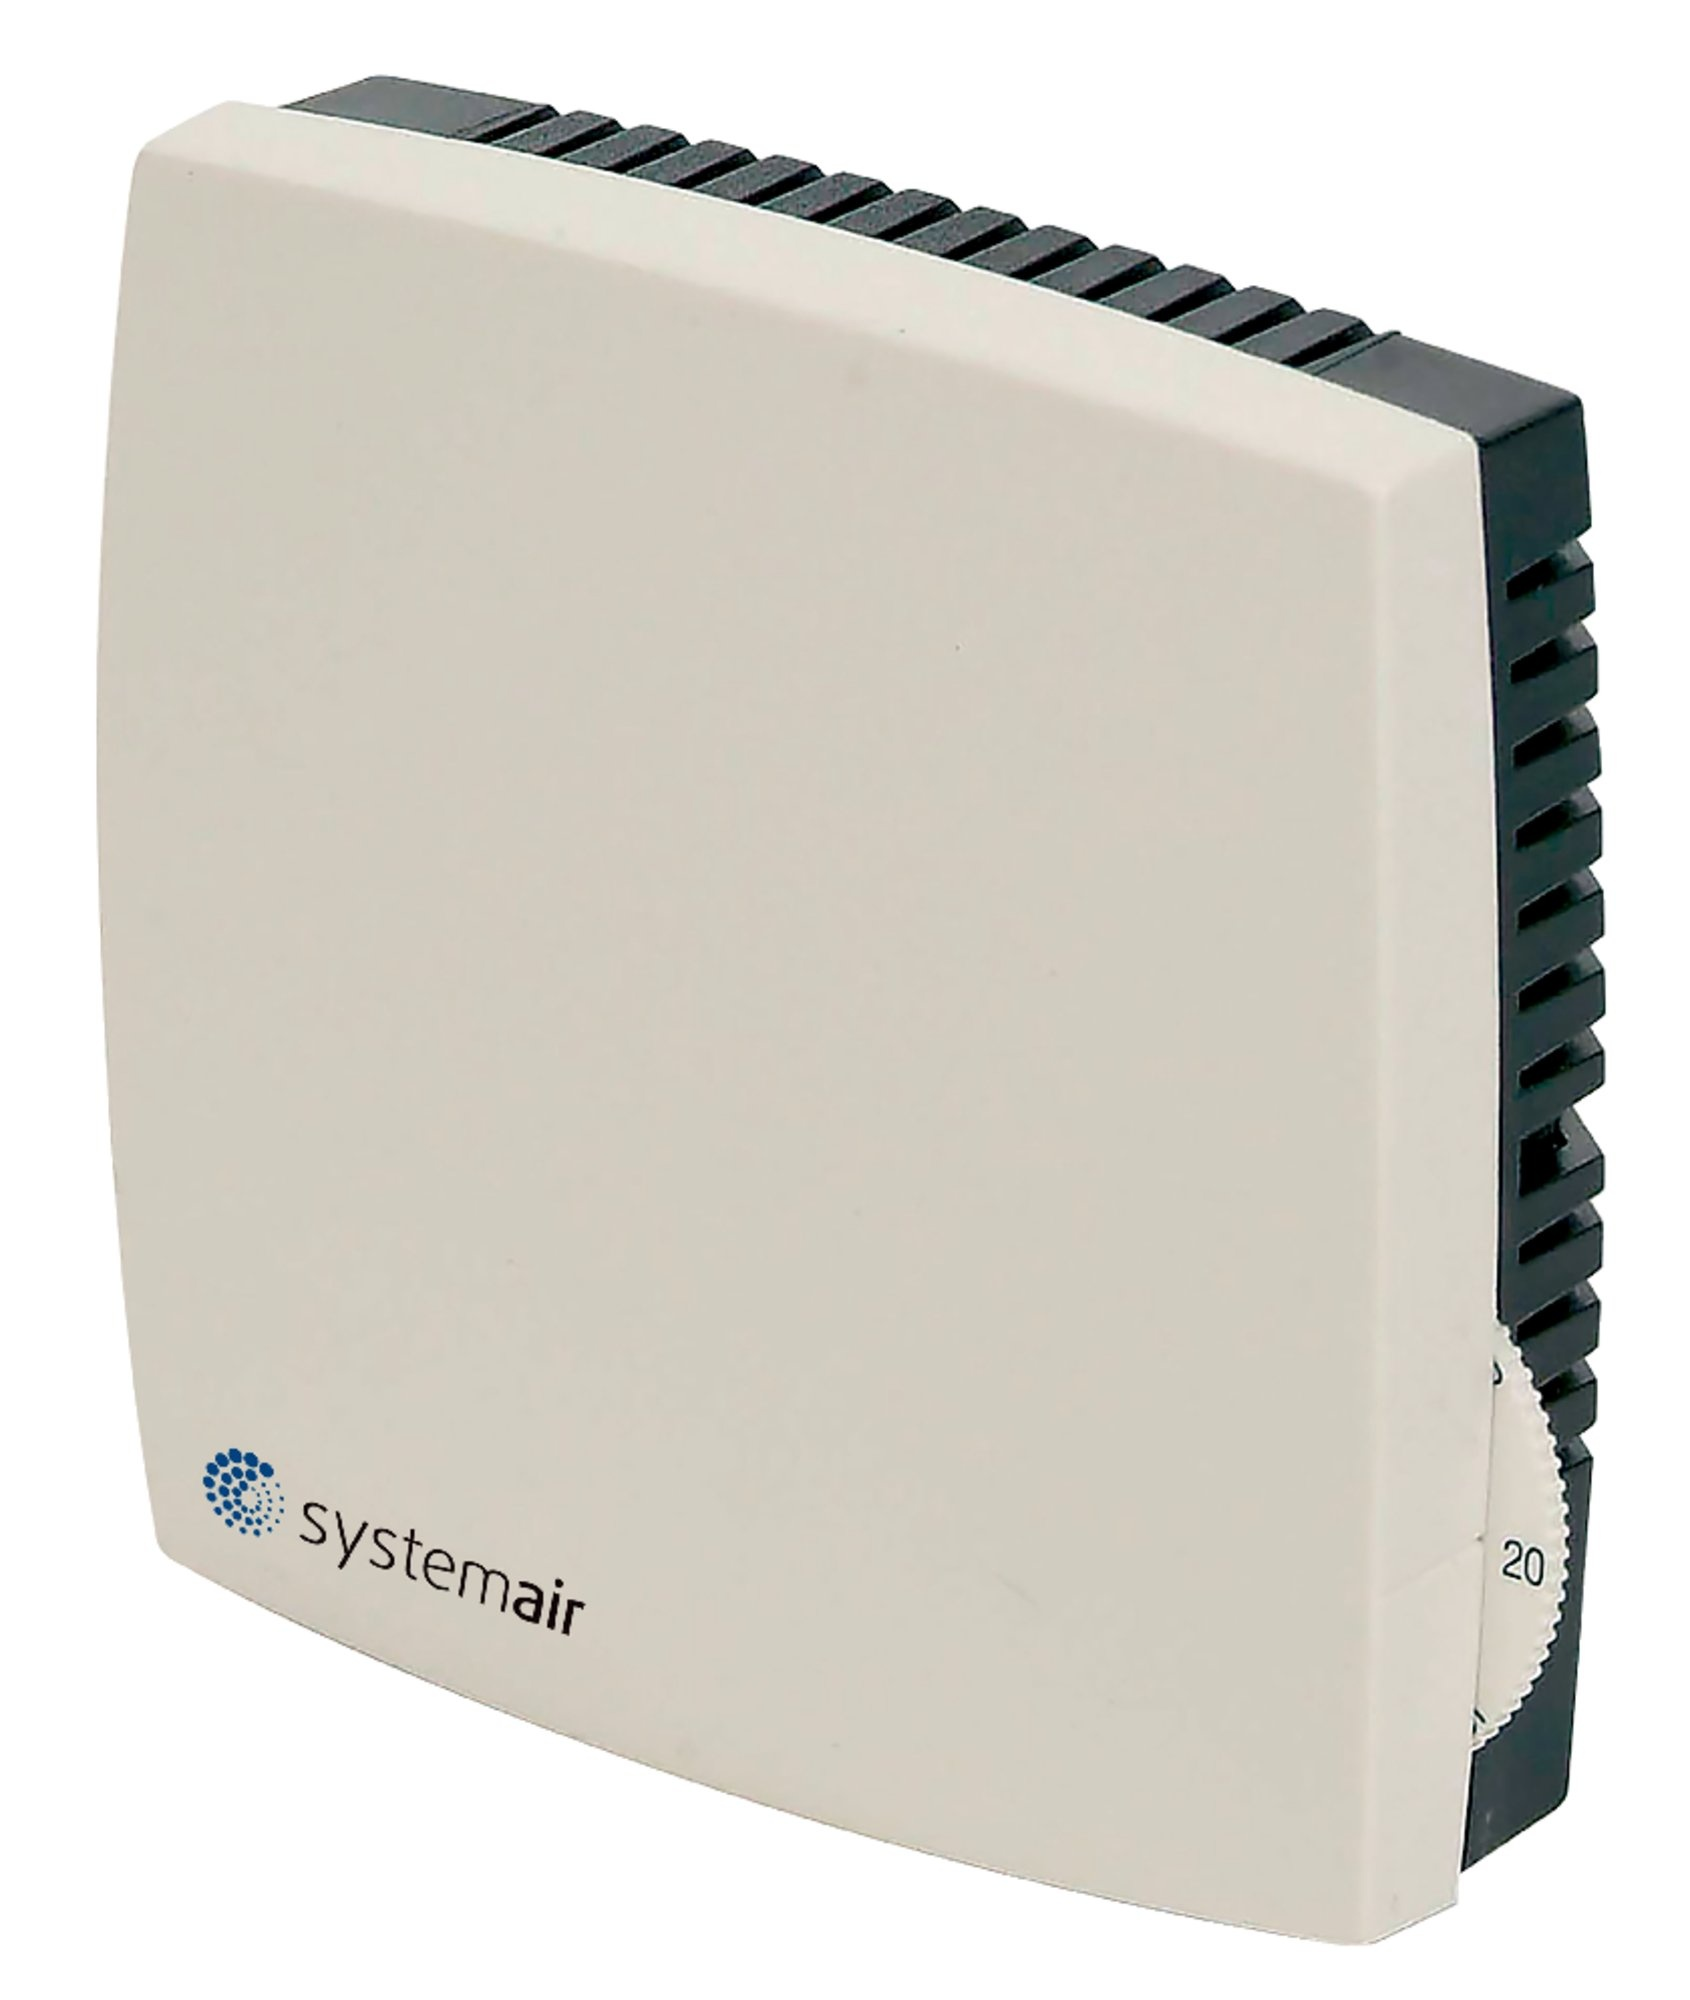 TG-R430 - Systemair